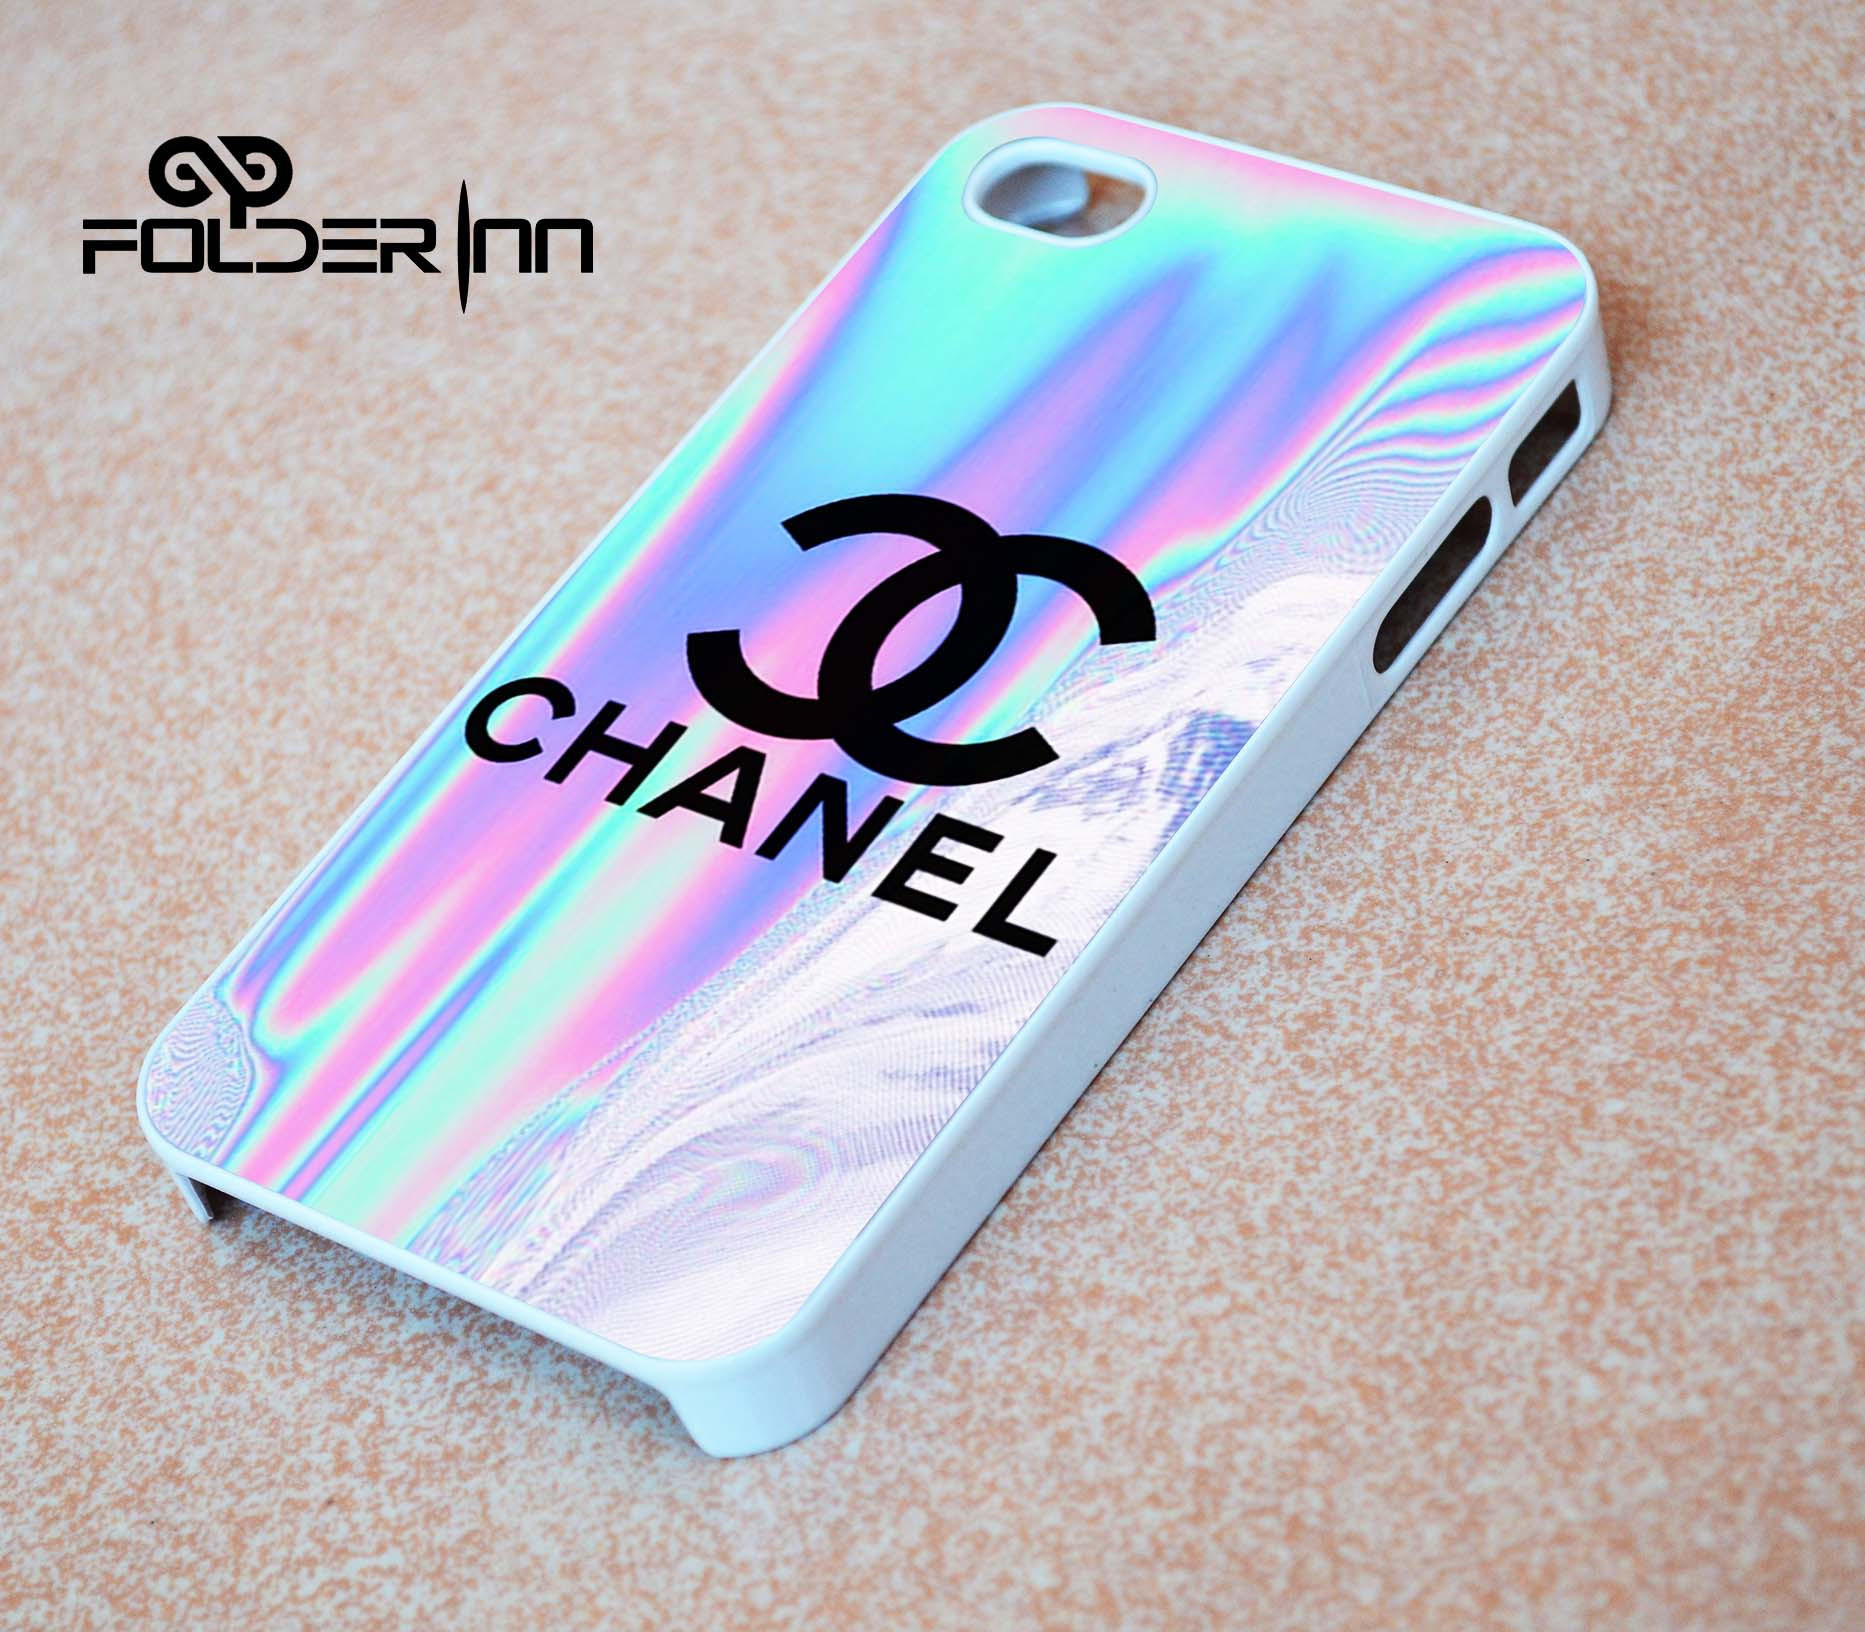 Chanel holographic iPhone 4s iphone 5 from folderinn.com